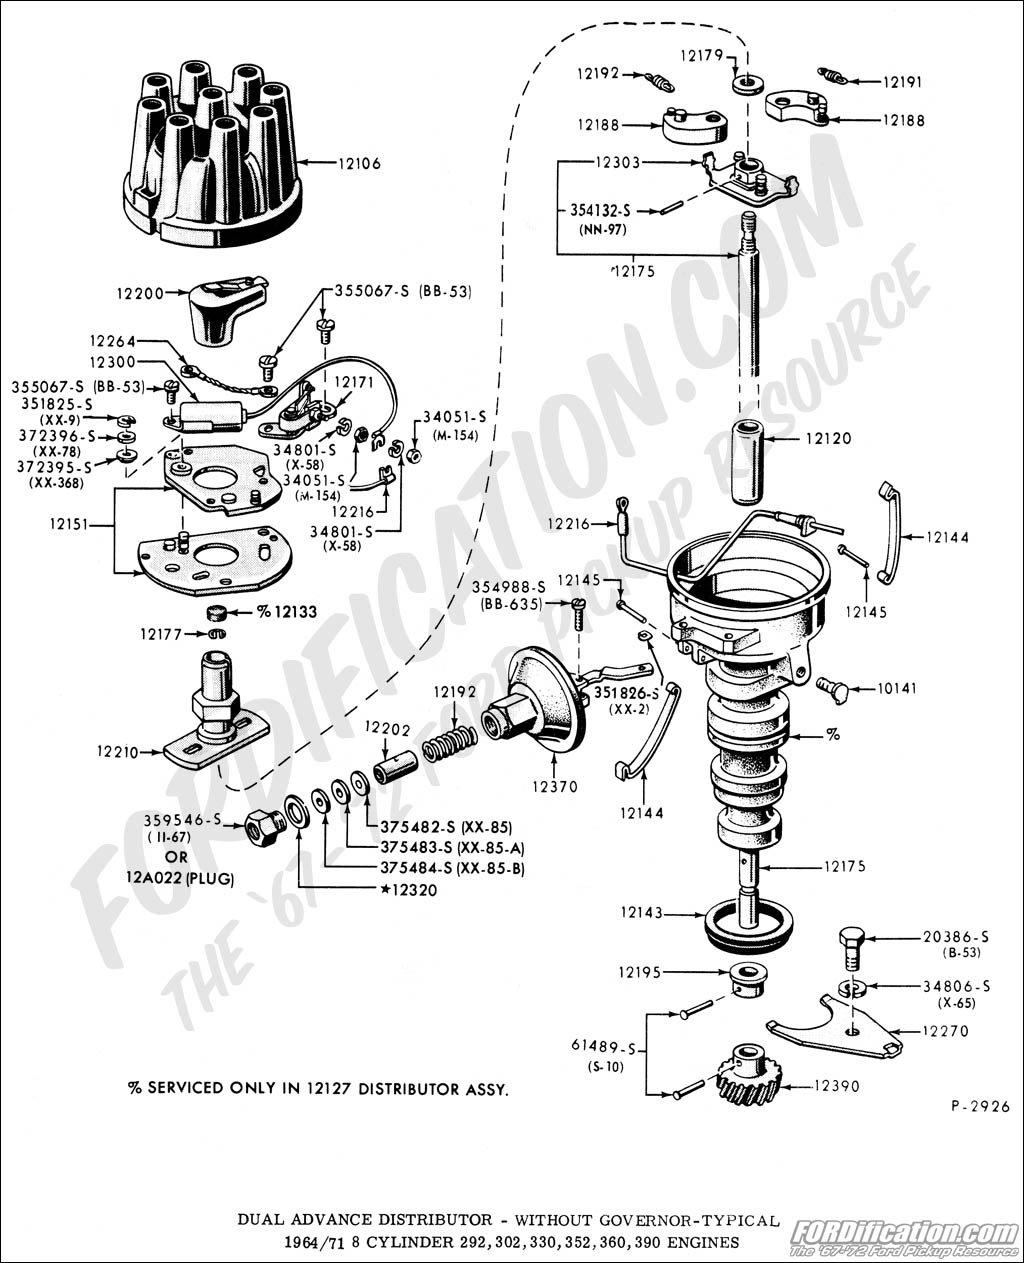 Ford 300 Distributor Wiring Diagram Libraries Flathead Engine Explainedford Third Level